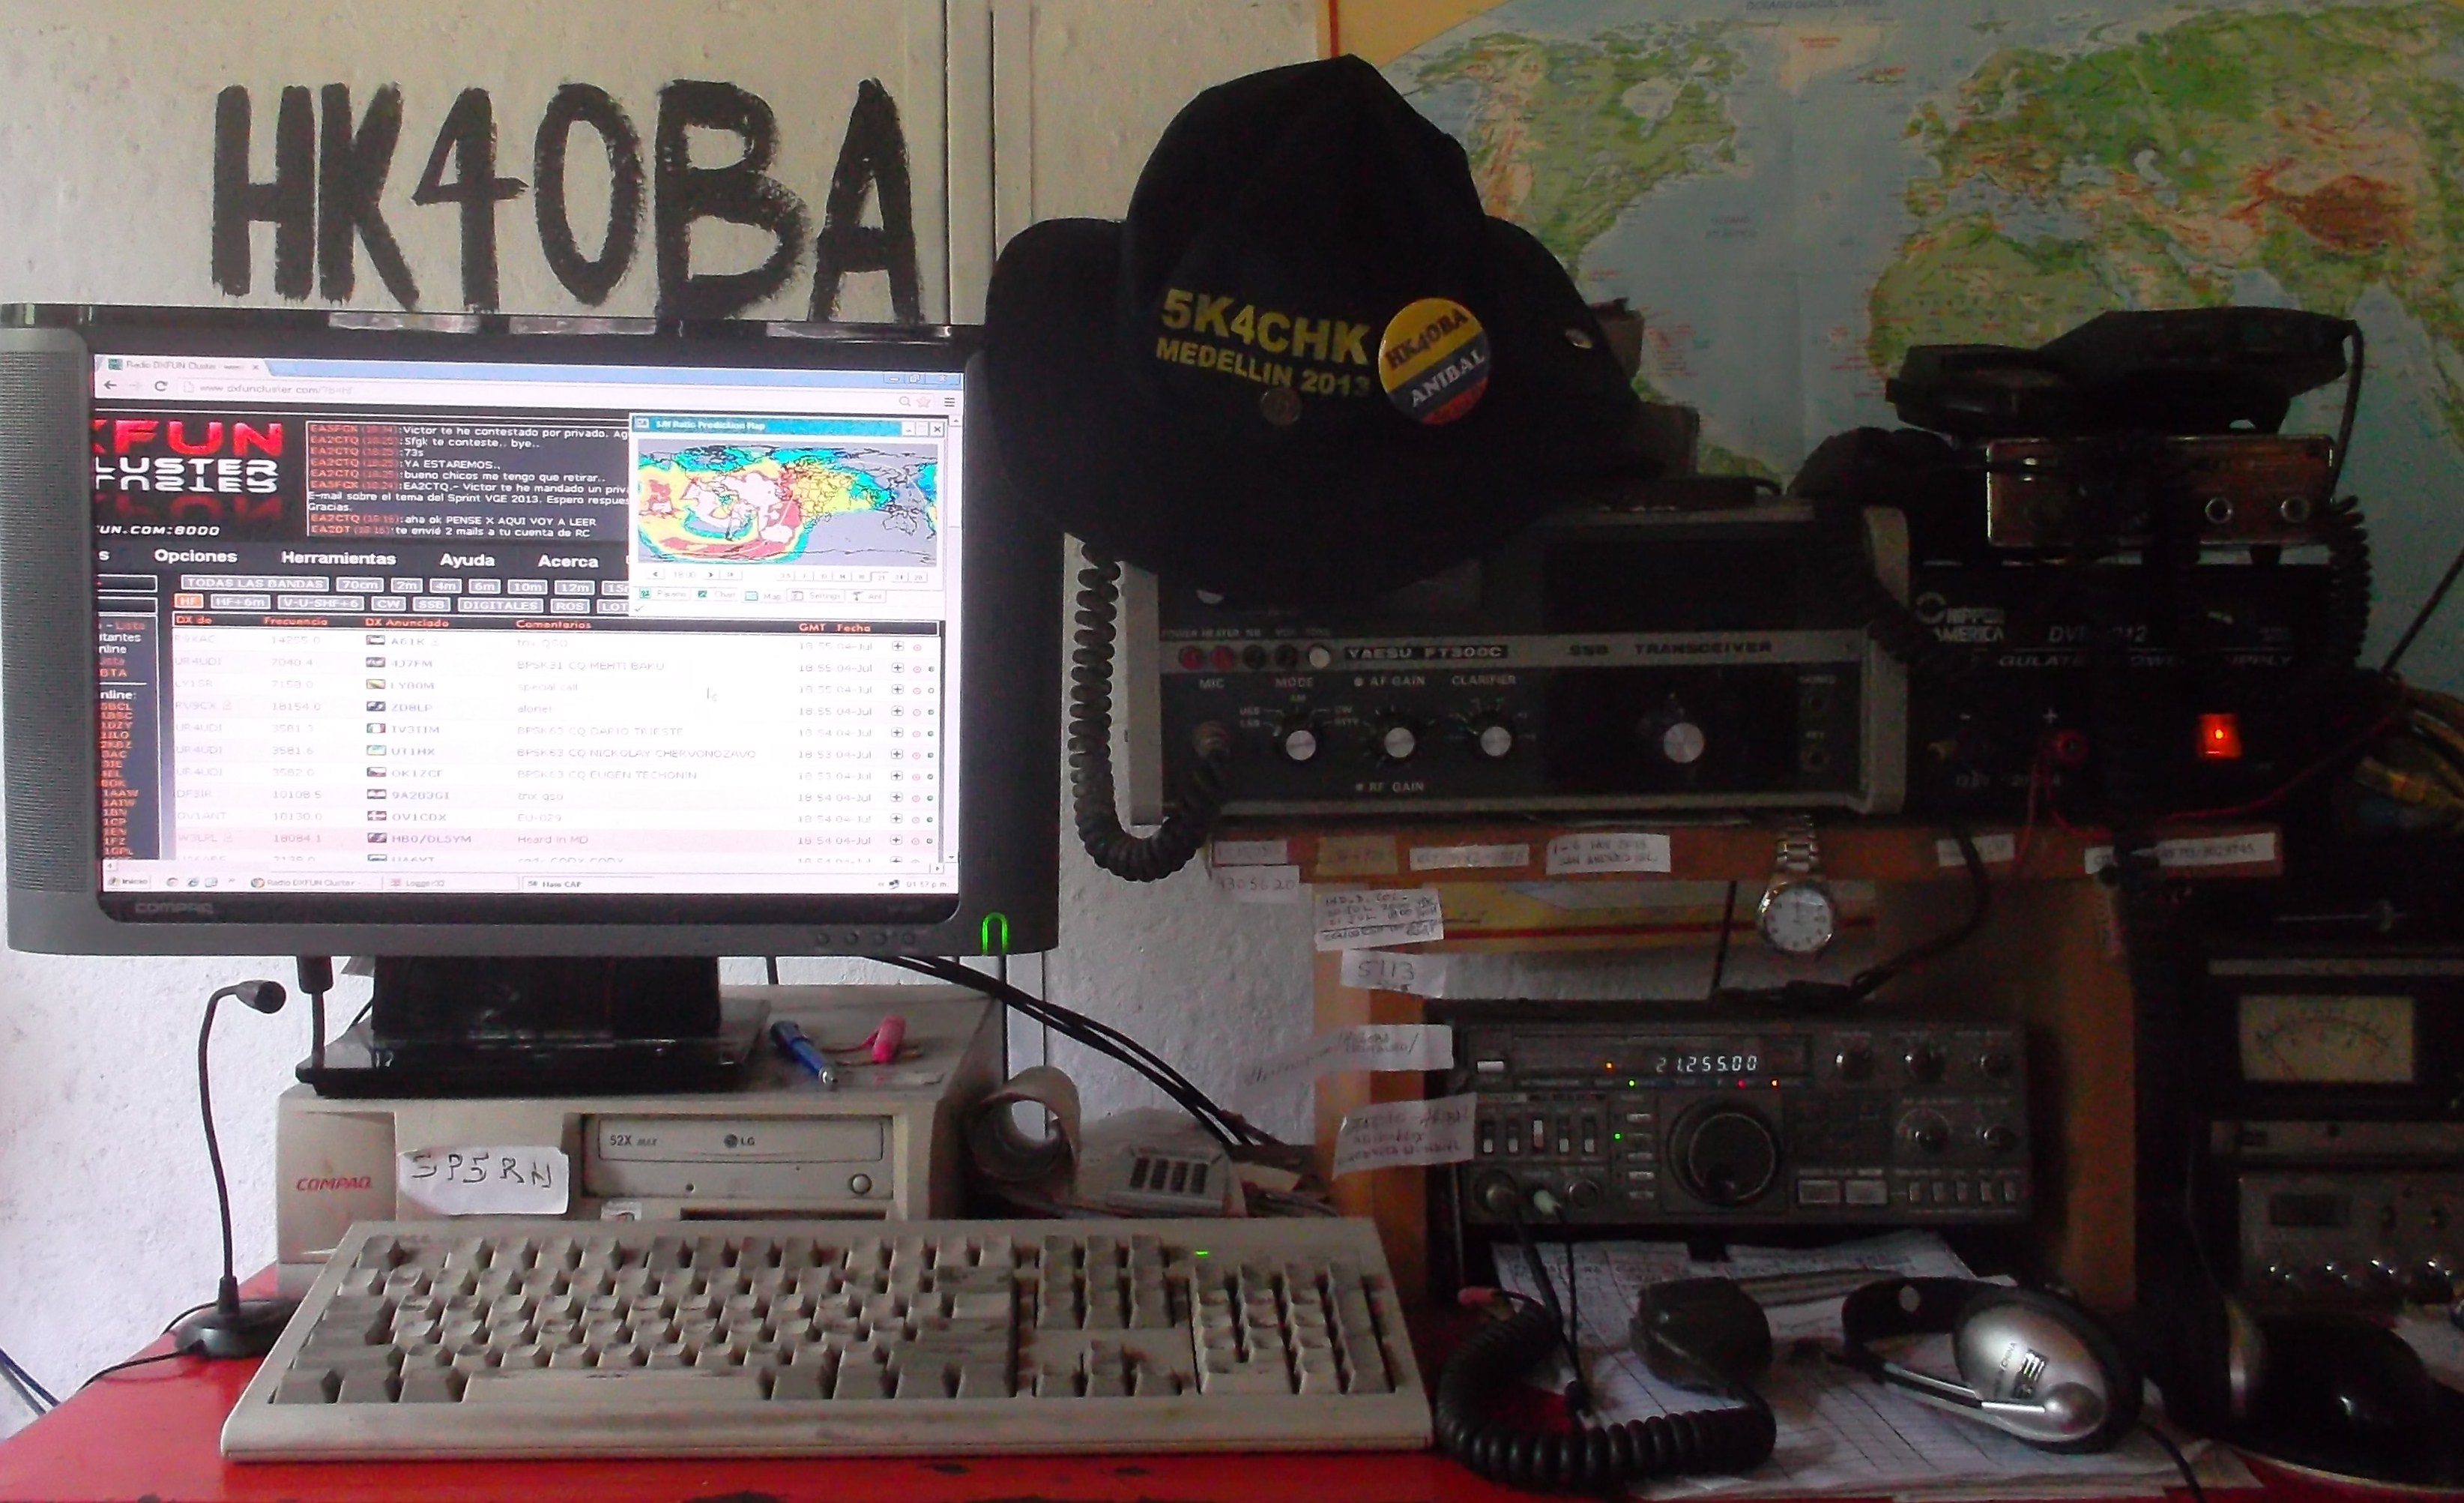 QSL image for HK4OBA